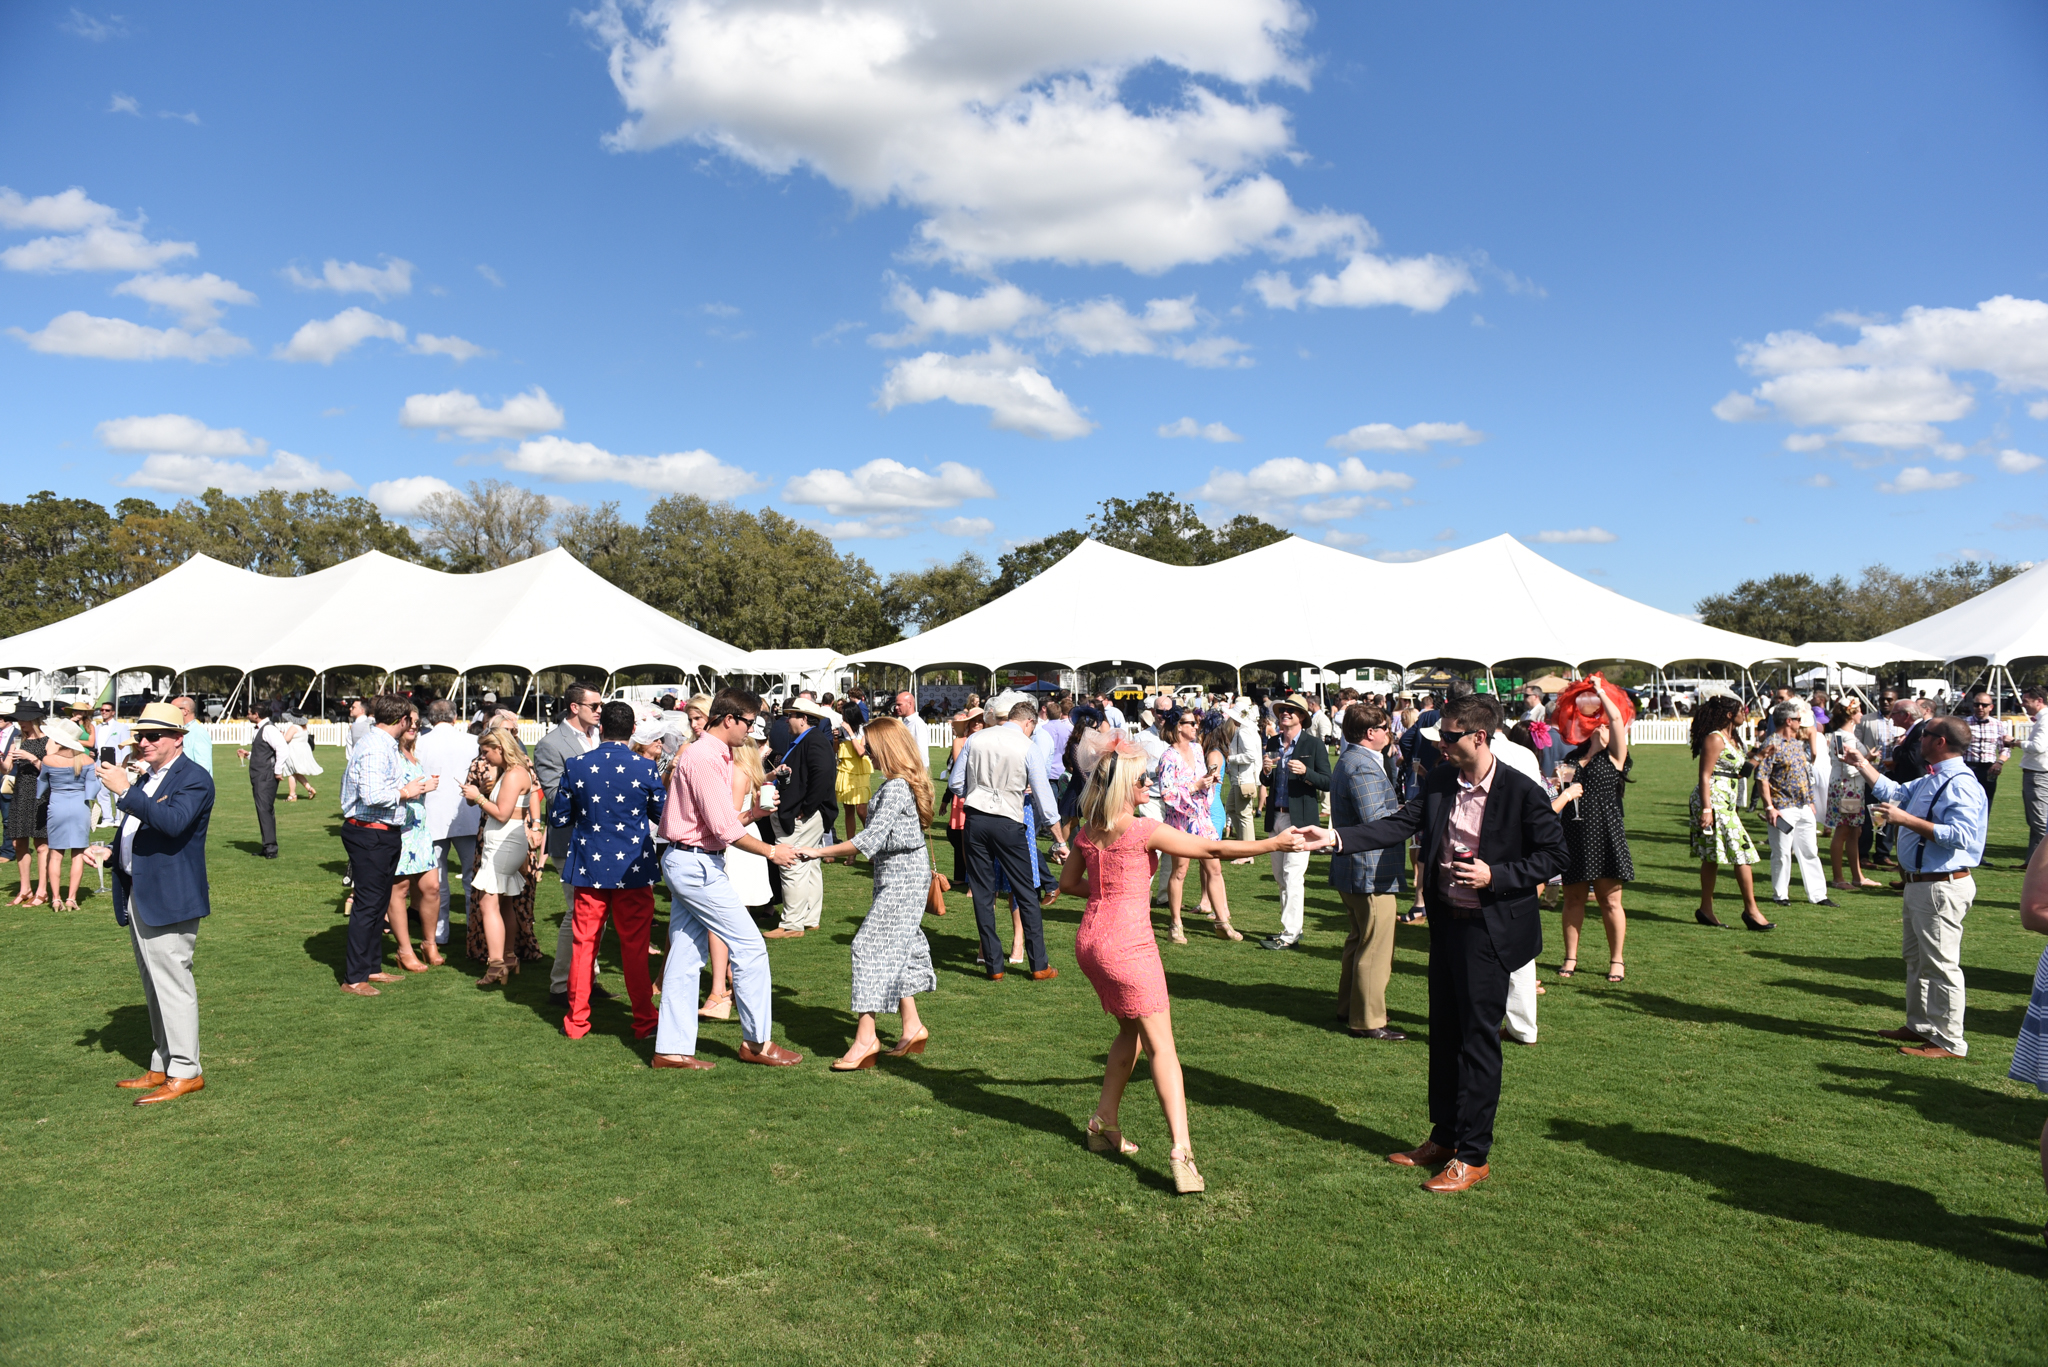 CharityPoloClassic2017-event-77.jpg